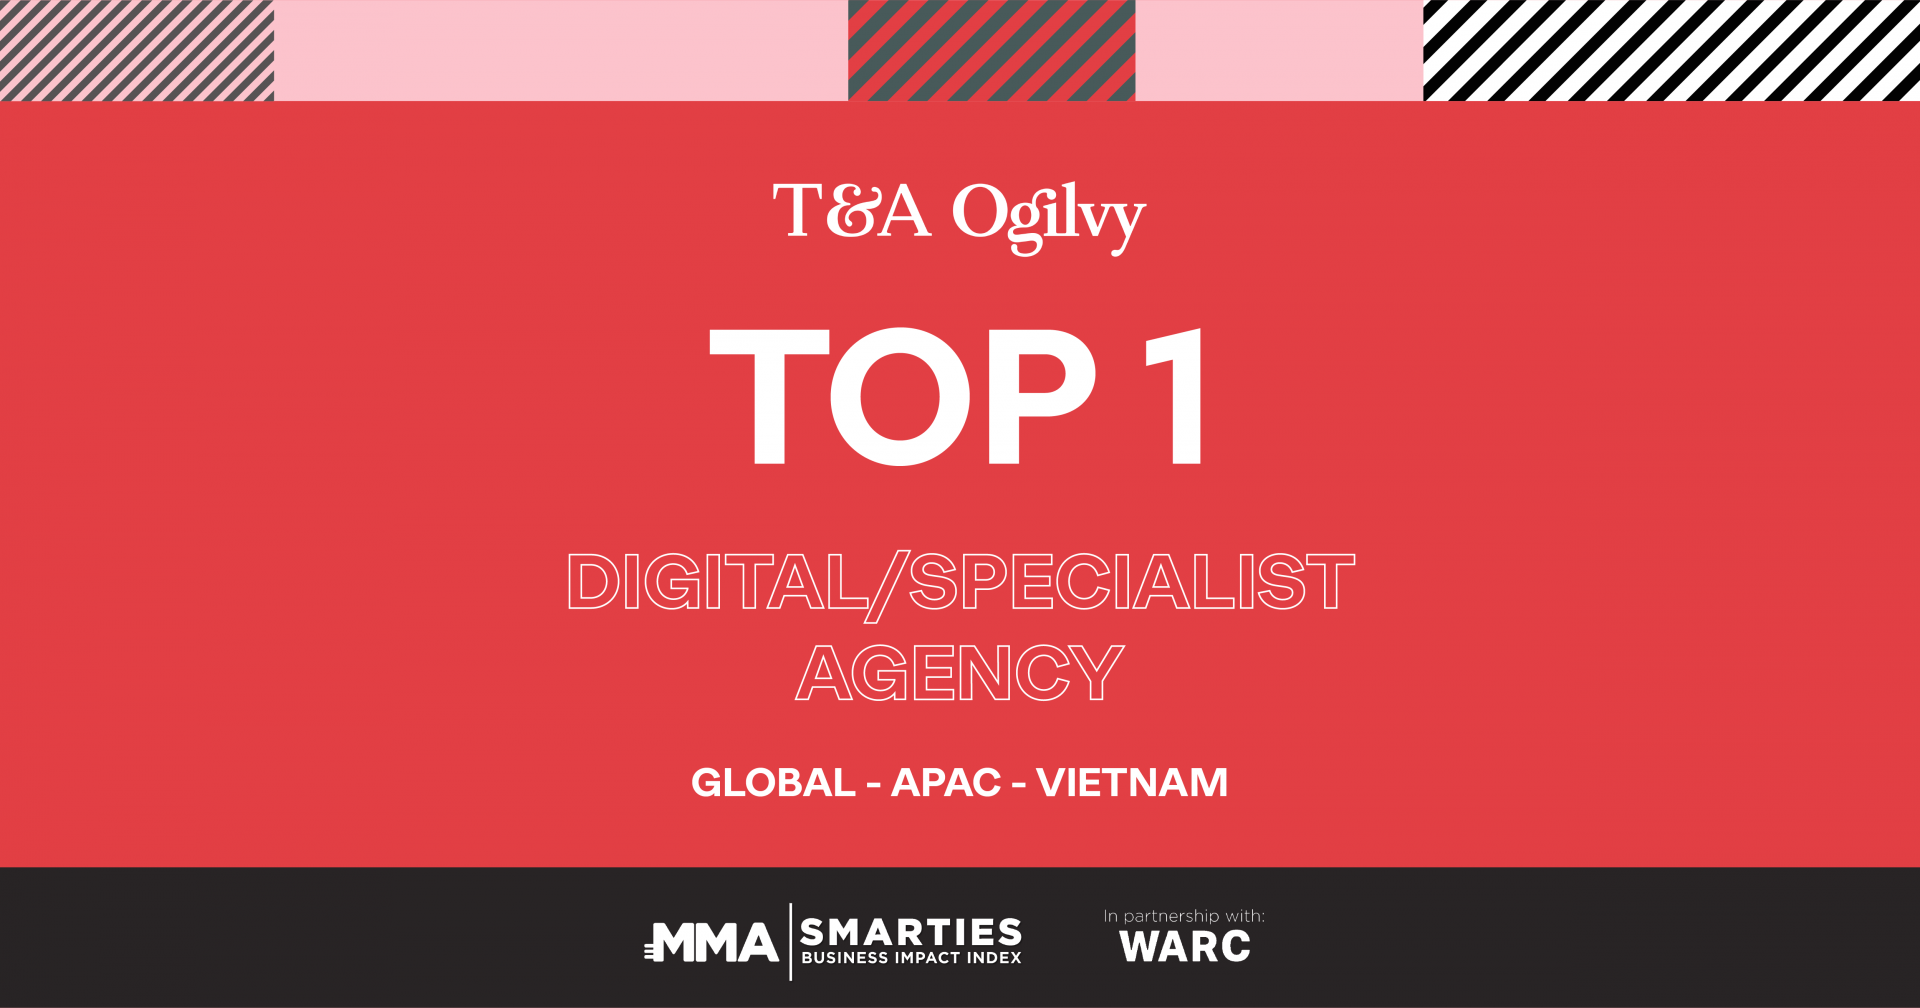 T&A Ogilvy leads Digital/Specialist Agency ranking on SMARTIES Business Impact Index